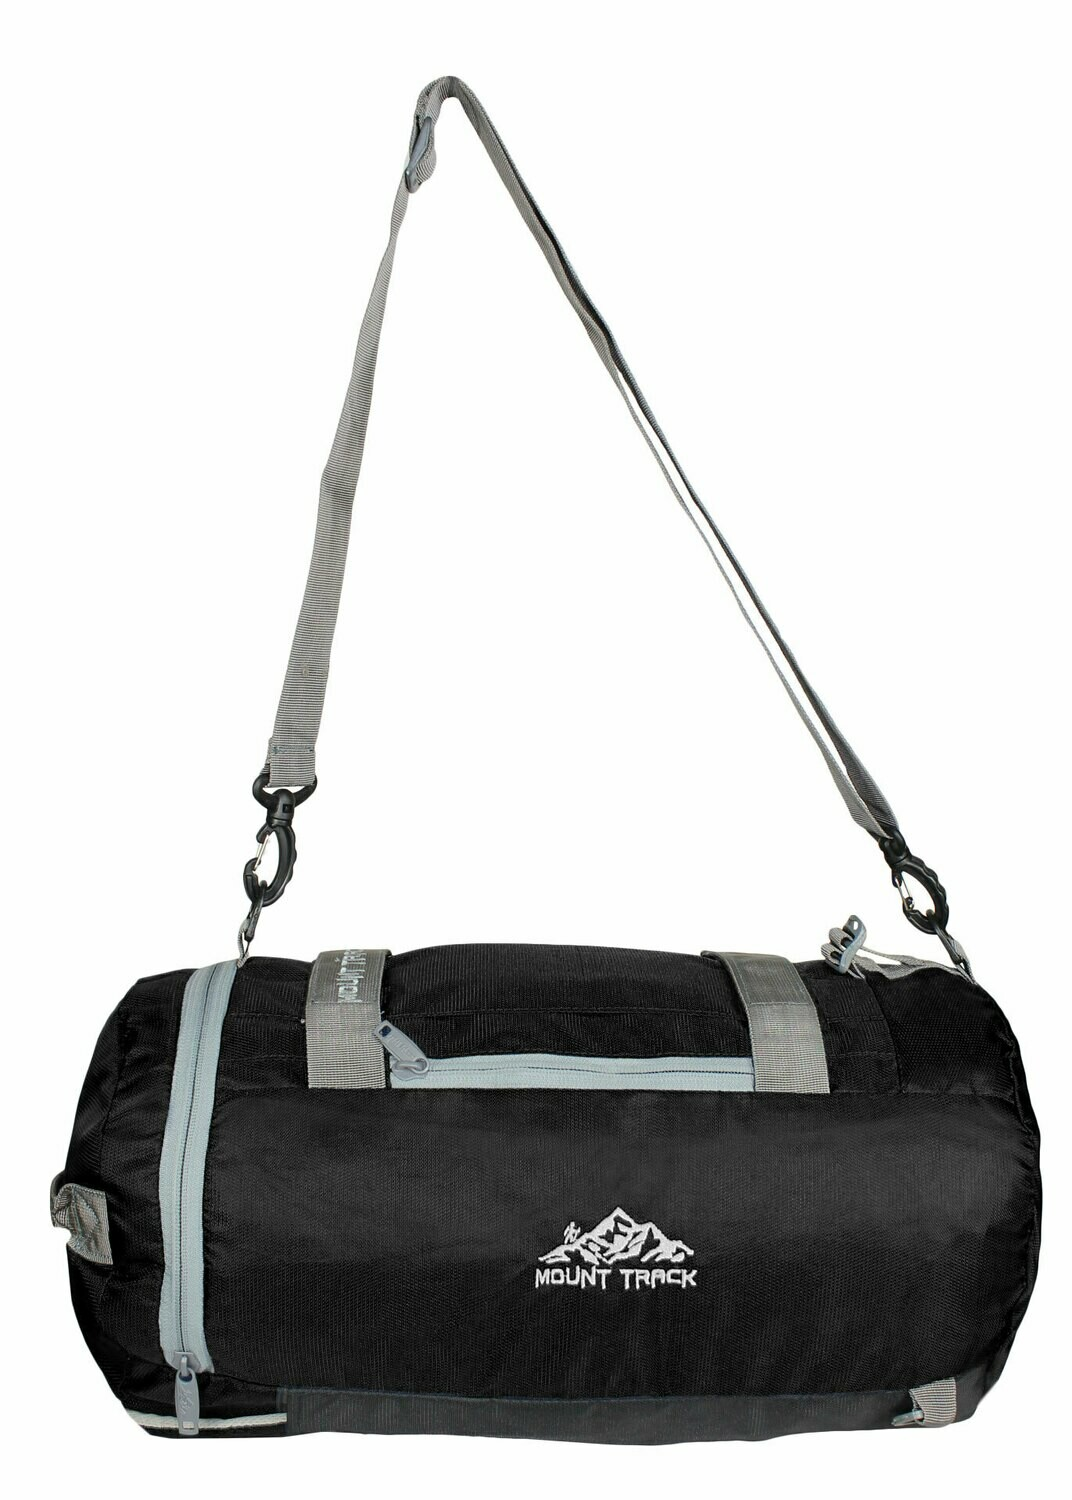 Mount Track Multipurpose Convertible Duffle bag/Backpack